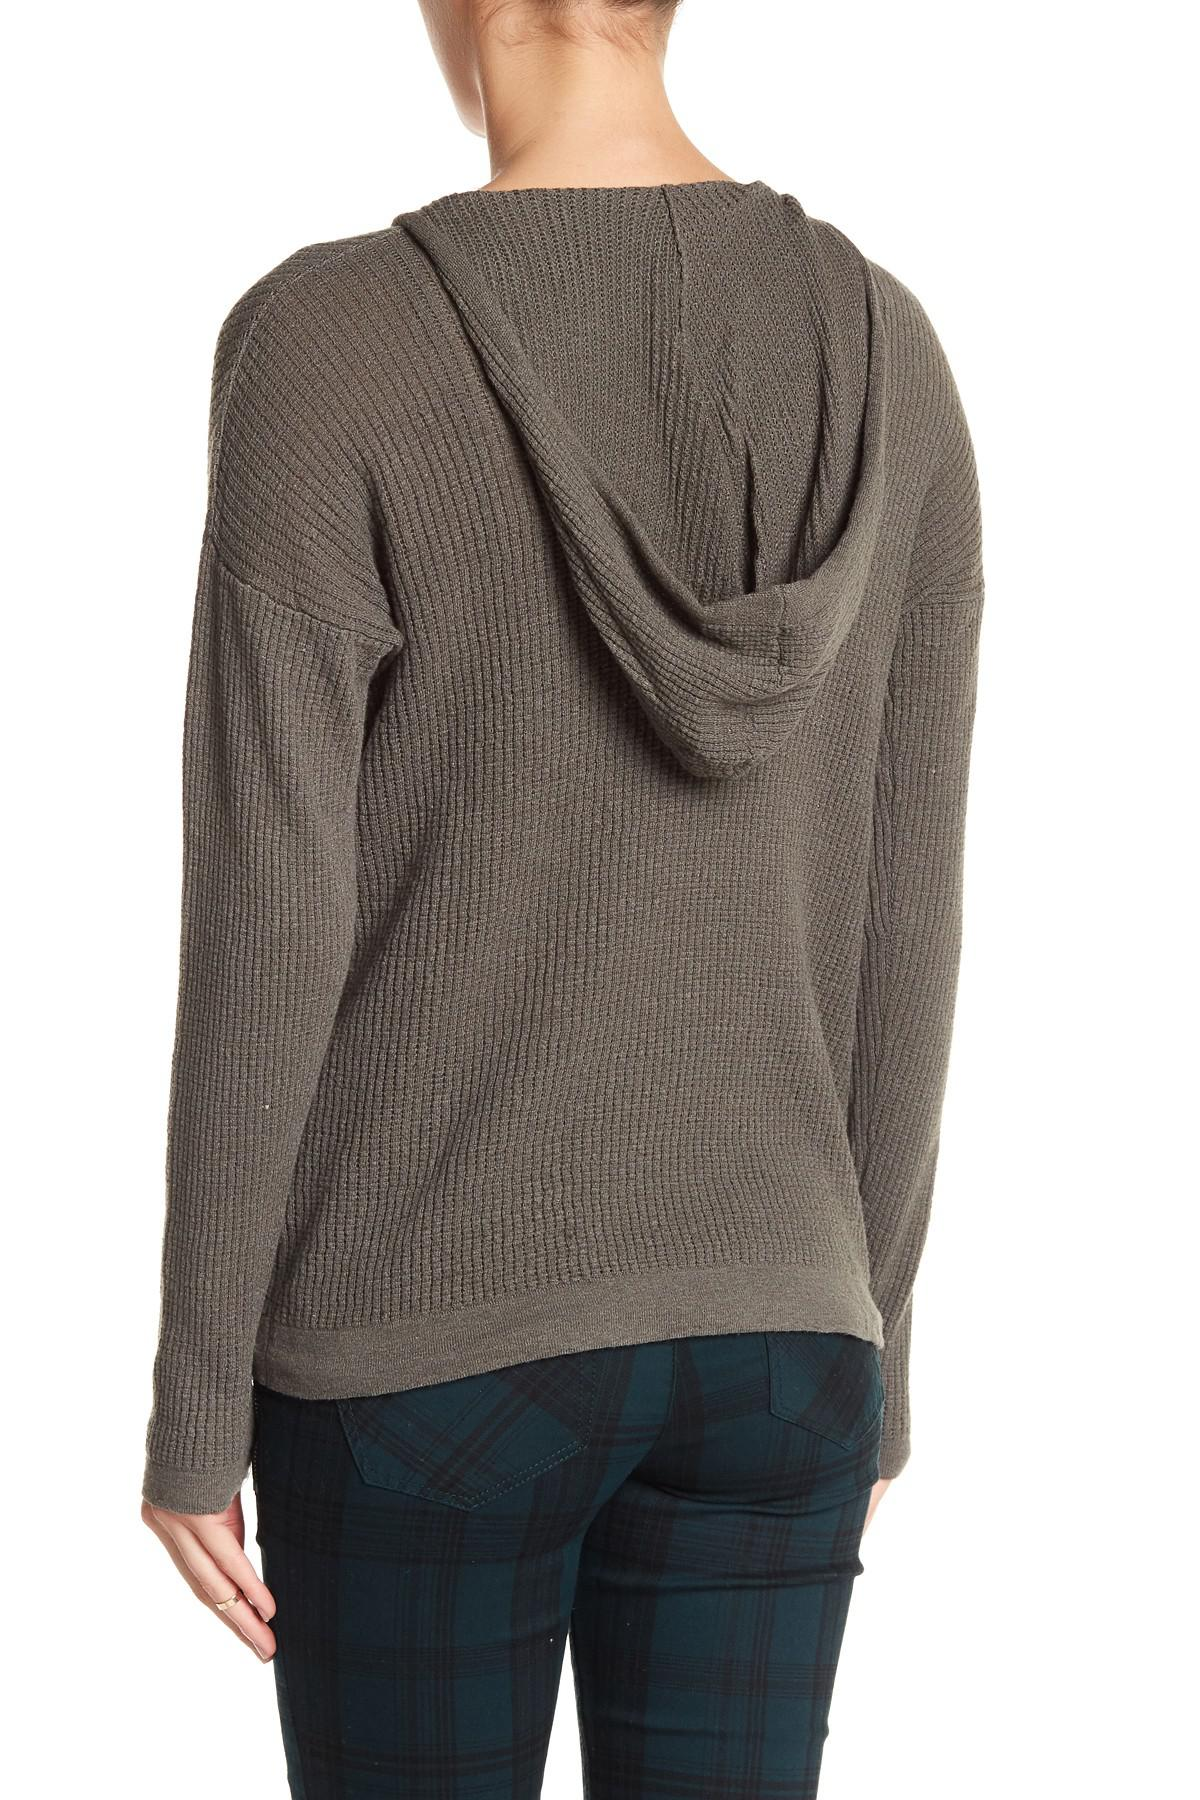 Democracy Hooded Knit V-neck Sweater in Gray | Lyst